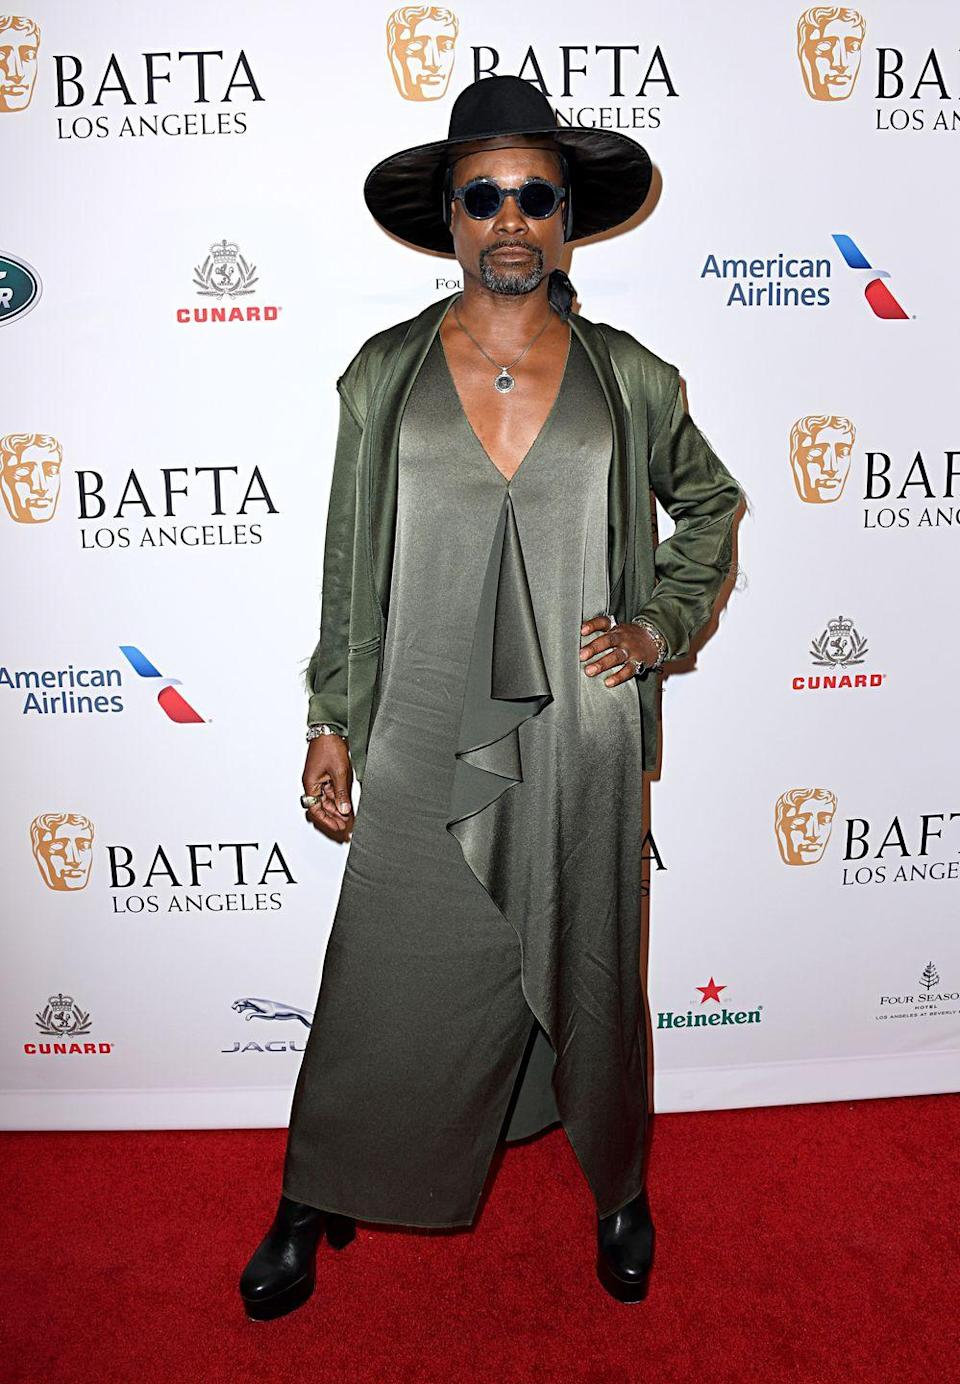 <p>Attending the BAFTA Los Angeles Tea Party at Four Seasons Hotel in Los Angeles, the actor wore a Baja East green dress, black Coach heeled boots, accessories by Konstantino jewellery and a black hat by Halomimi. </p><p>He styled the look with a pair of black sunglasses by Thom Browne. </p>